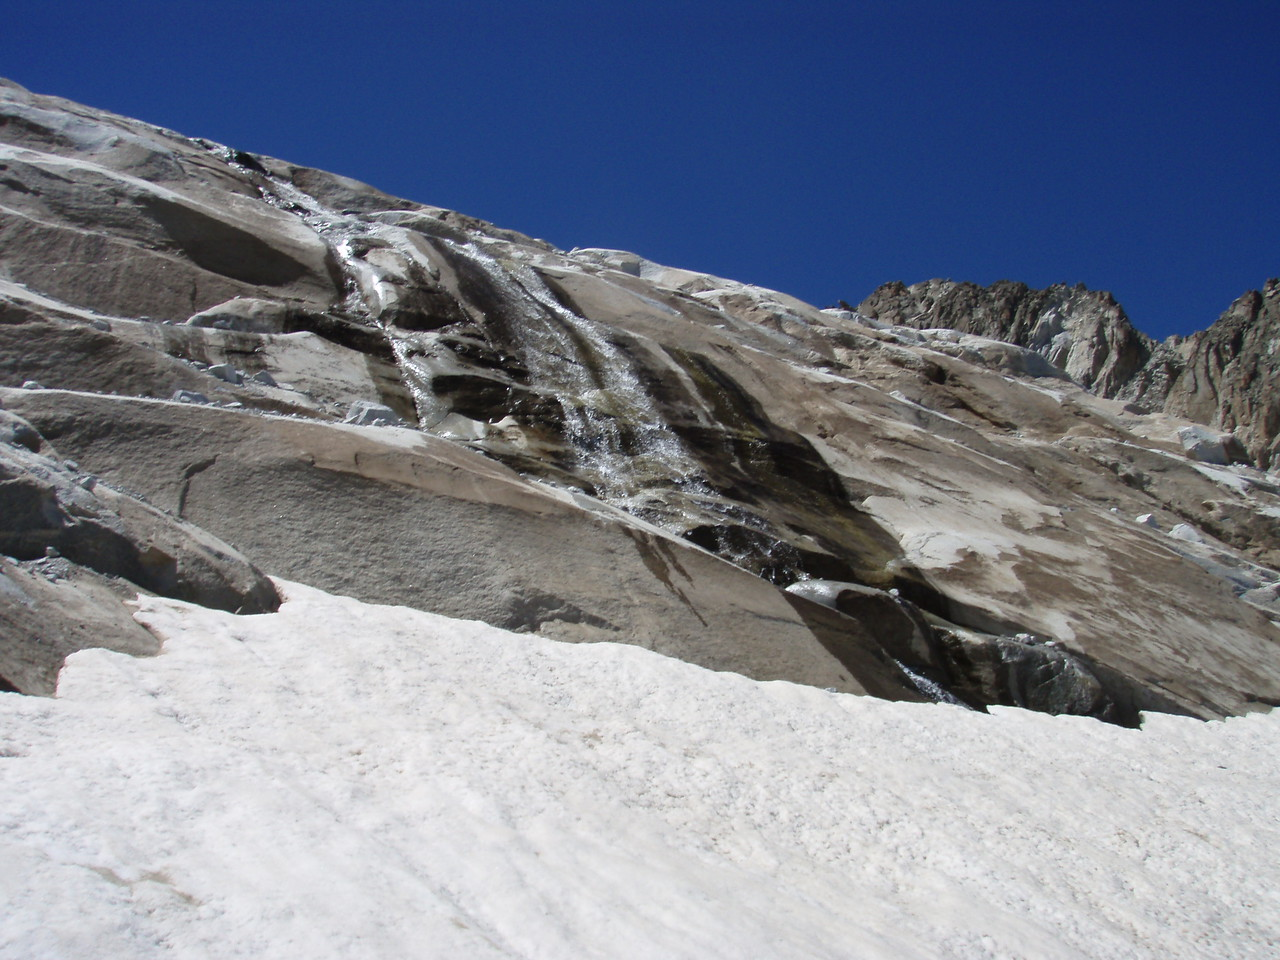 Melting glacier on Pico Aneto